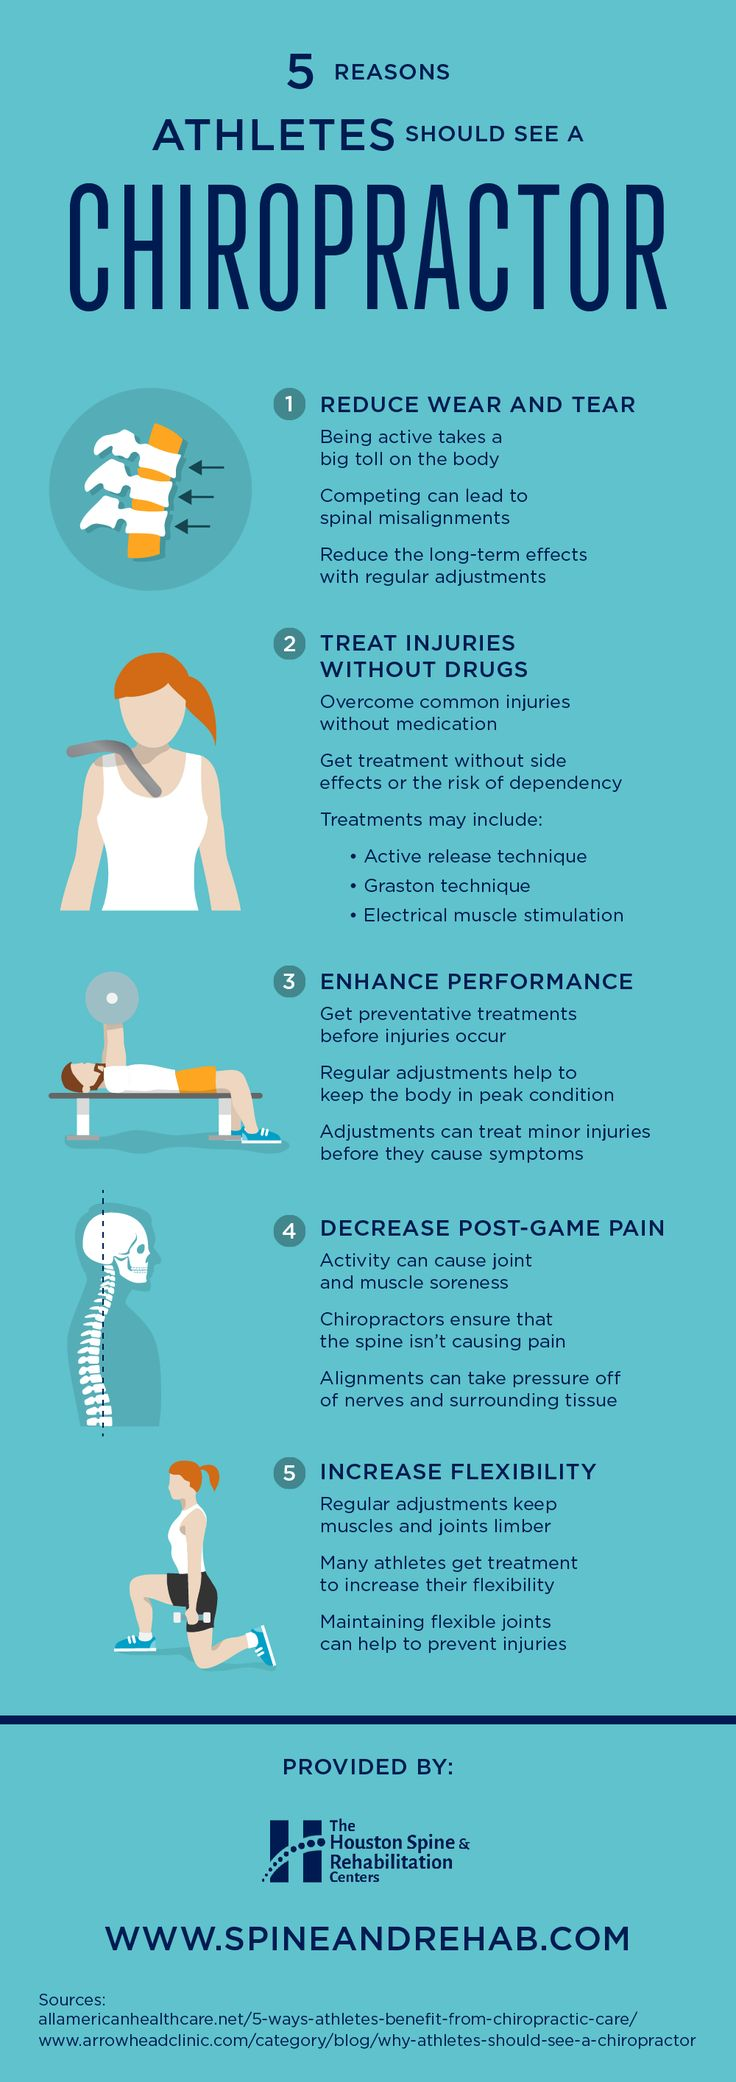 Drugs can be effective for treating injuries, but they might not be the ideal treatment plan for you! See this infographic to find out why athletes should see a chiropractor.